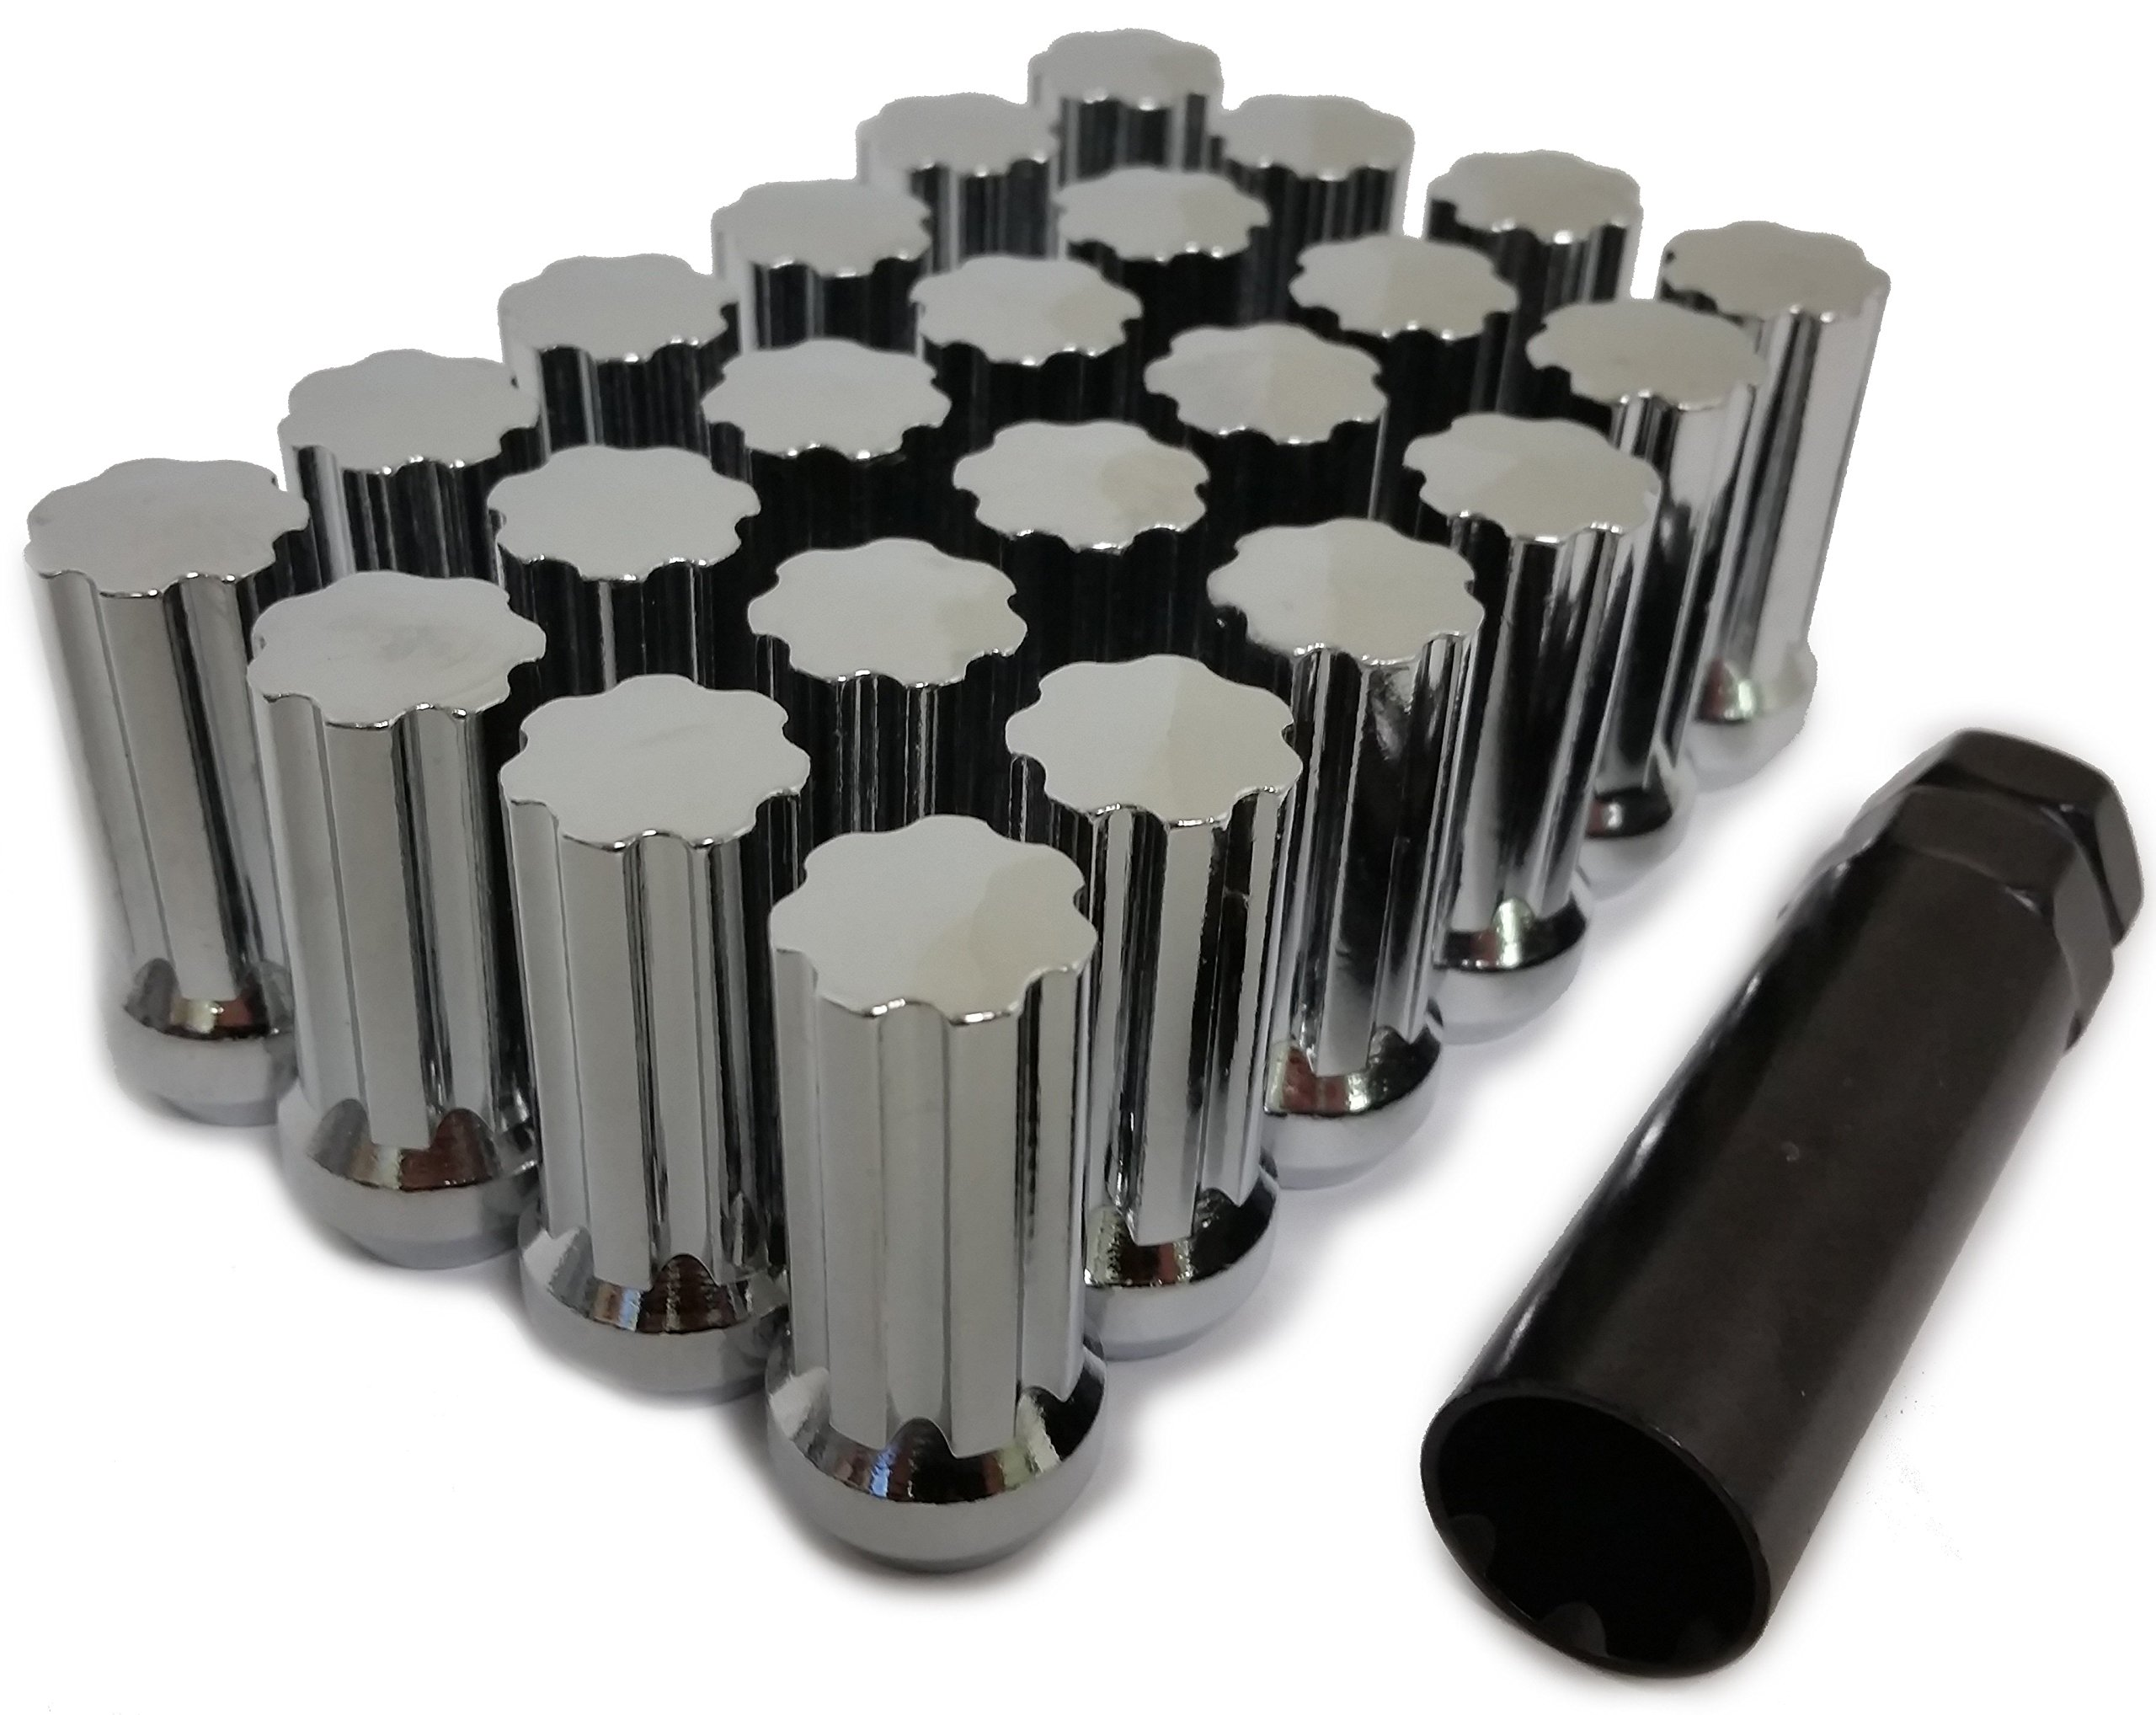 24 CHROME SPLINE LUG NUTS | 14X1.5 | CHEVY GMC SILVERADO HUMMER | 6X5.5 + 6X139.7